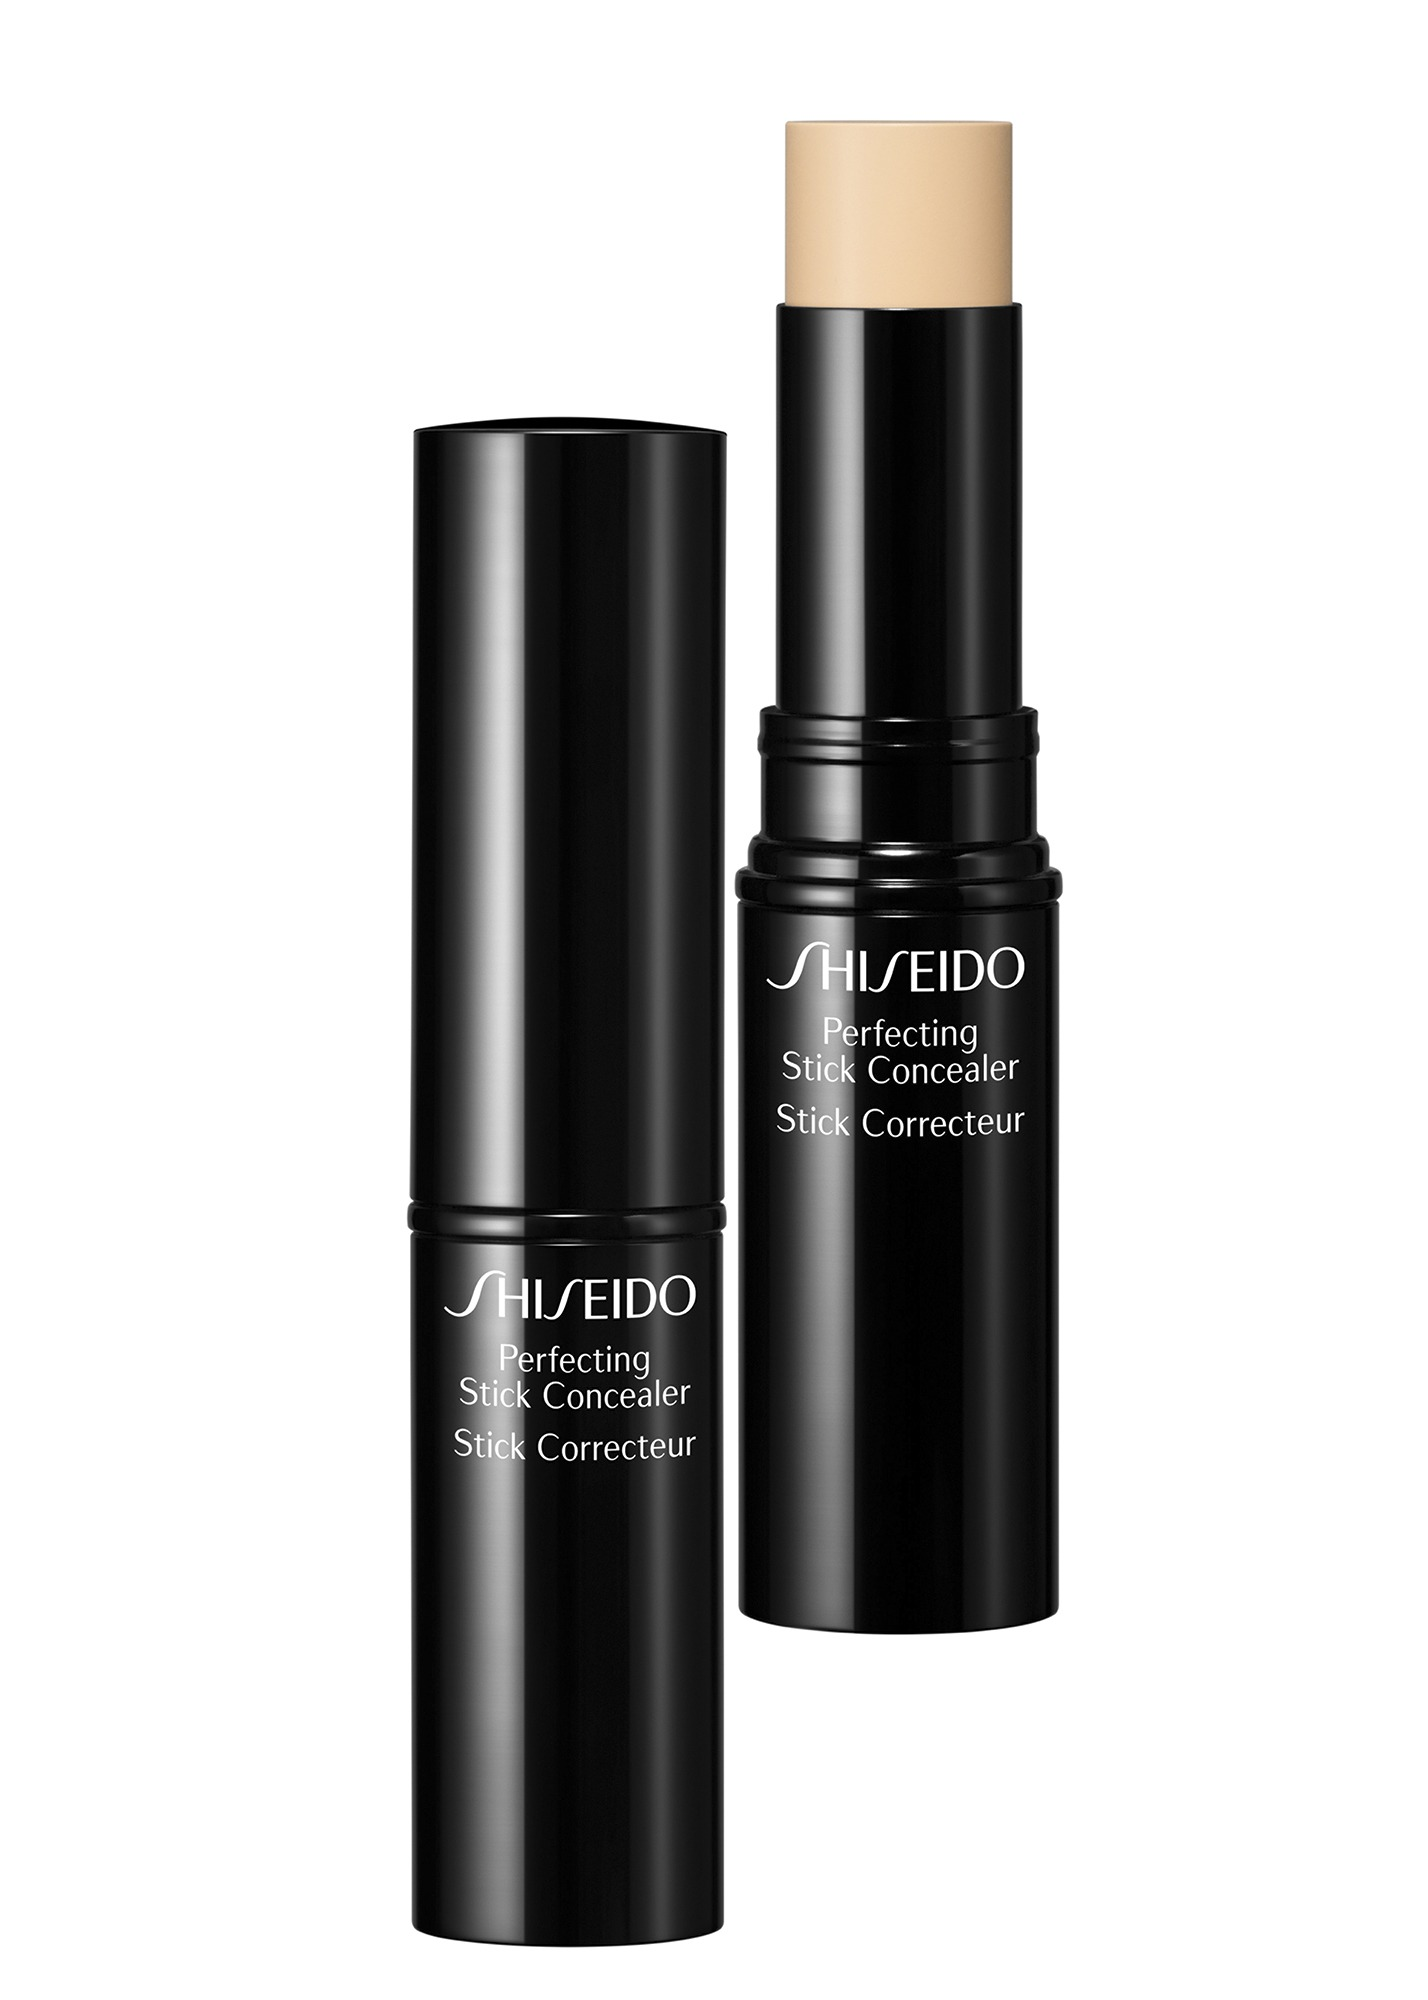 Perfecting+Stick+Concealer+99+TL